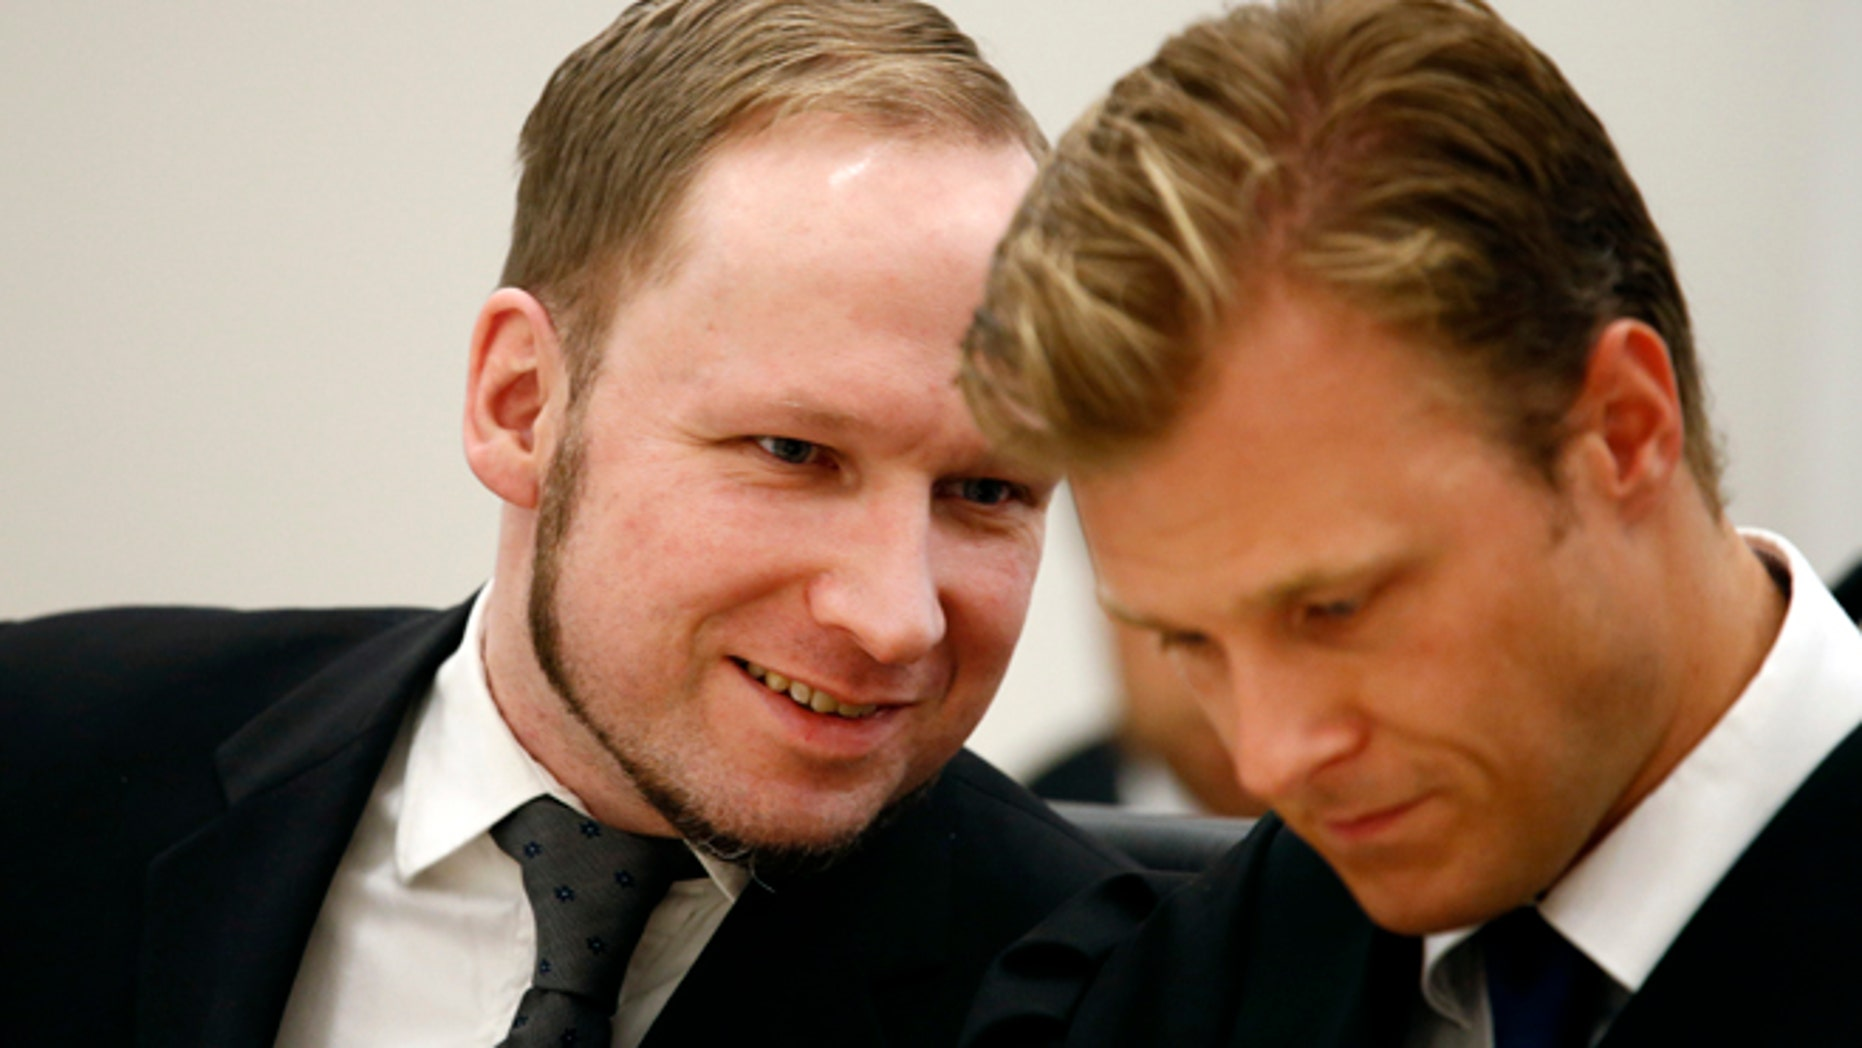 Anders Breivik talks with a lawyer last summer. CBS News reports that sources say the Newtown gunman wanted to kill more people than Breivik.